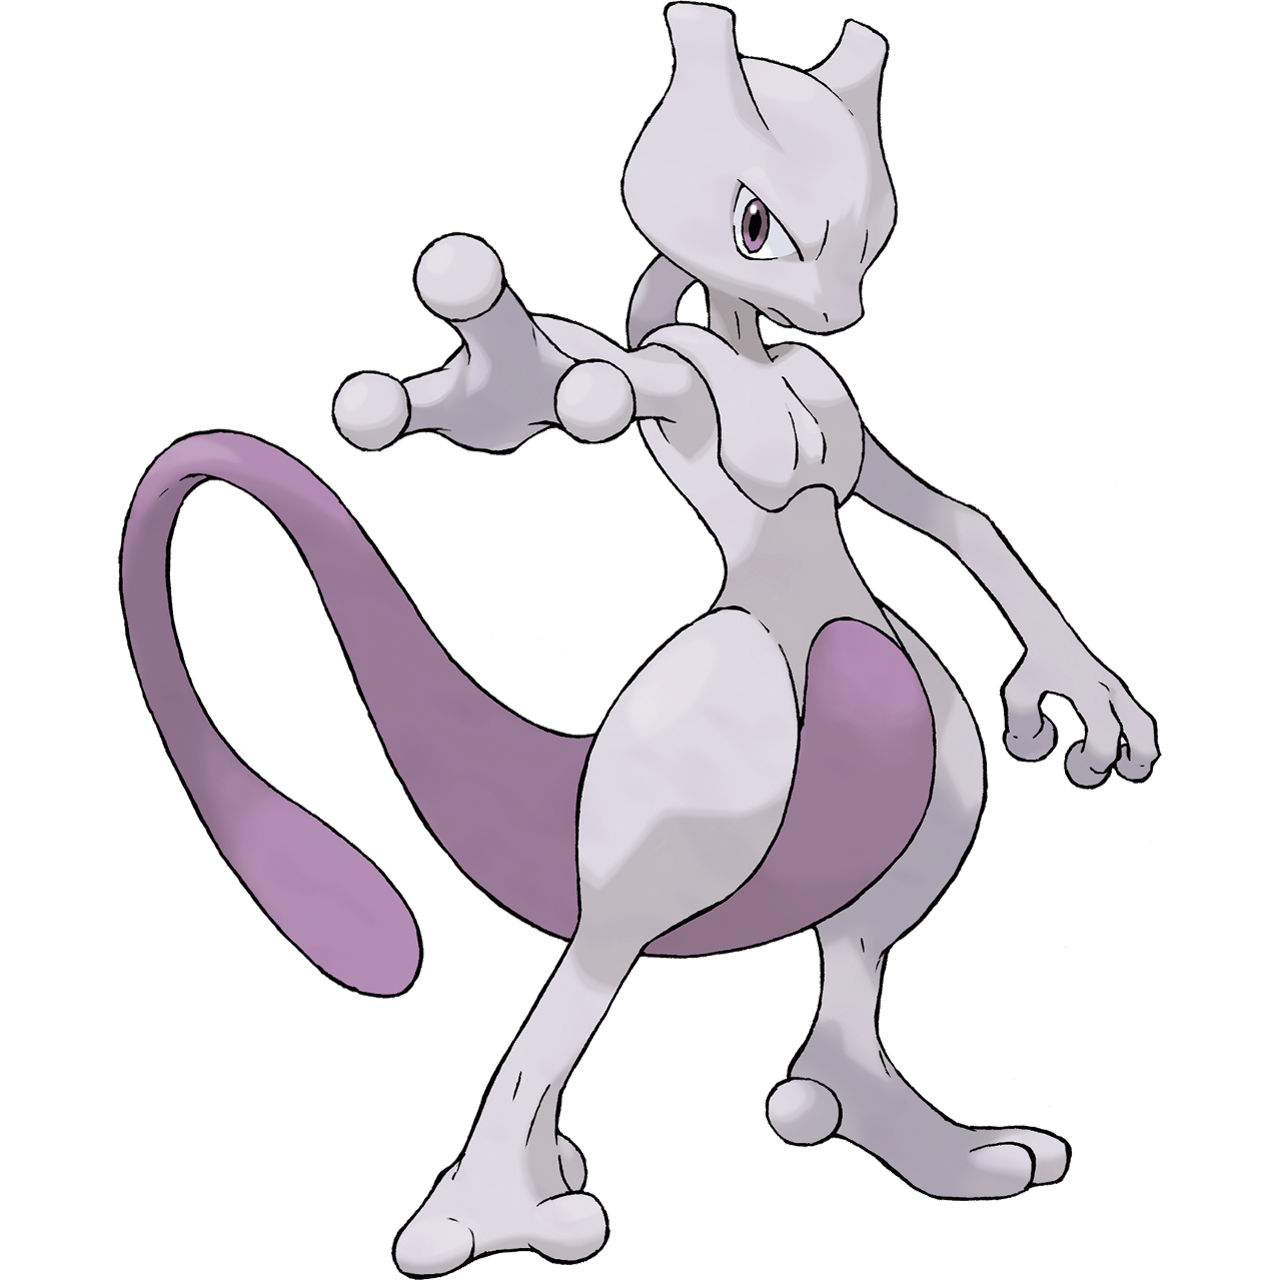 Official Mewtwo art